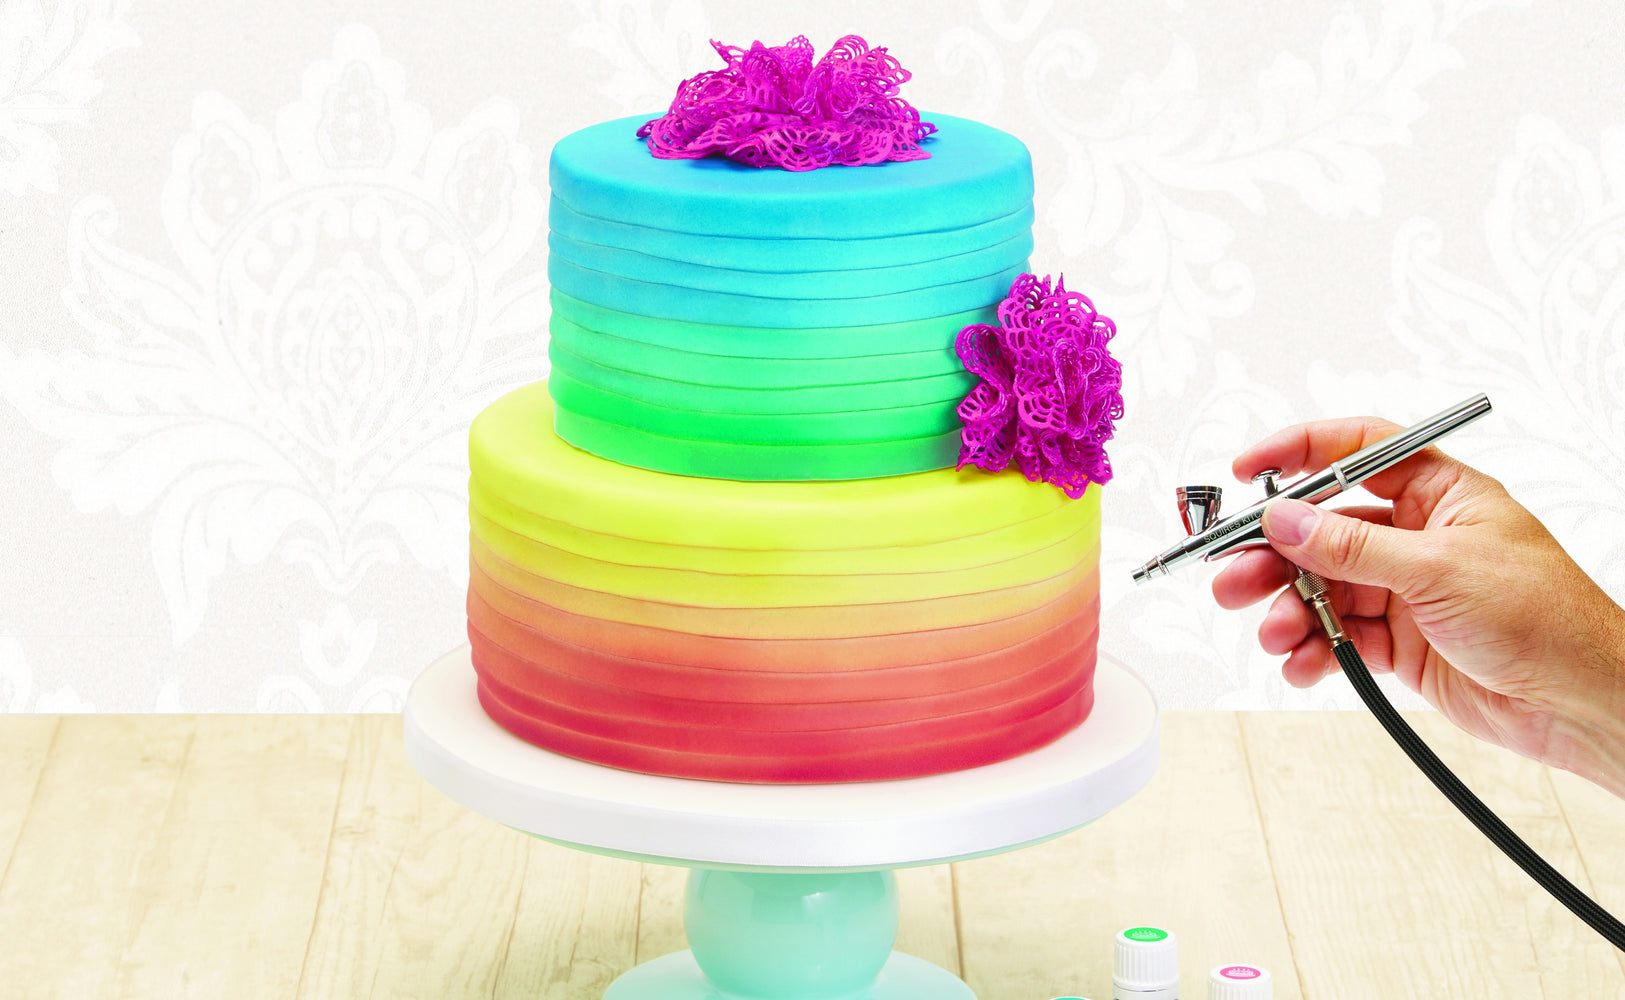 Bakell® Airbrush Gun Kit - Bakell.com | Airbrush Gun for Cake Decorating & Baking!